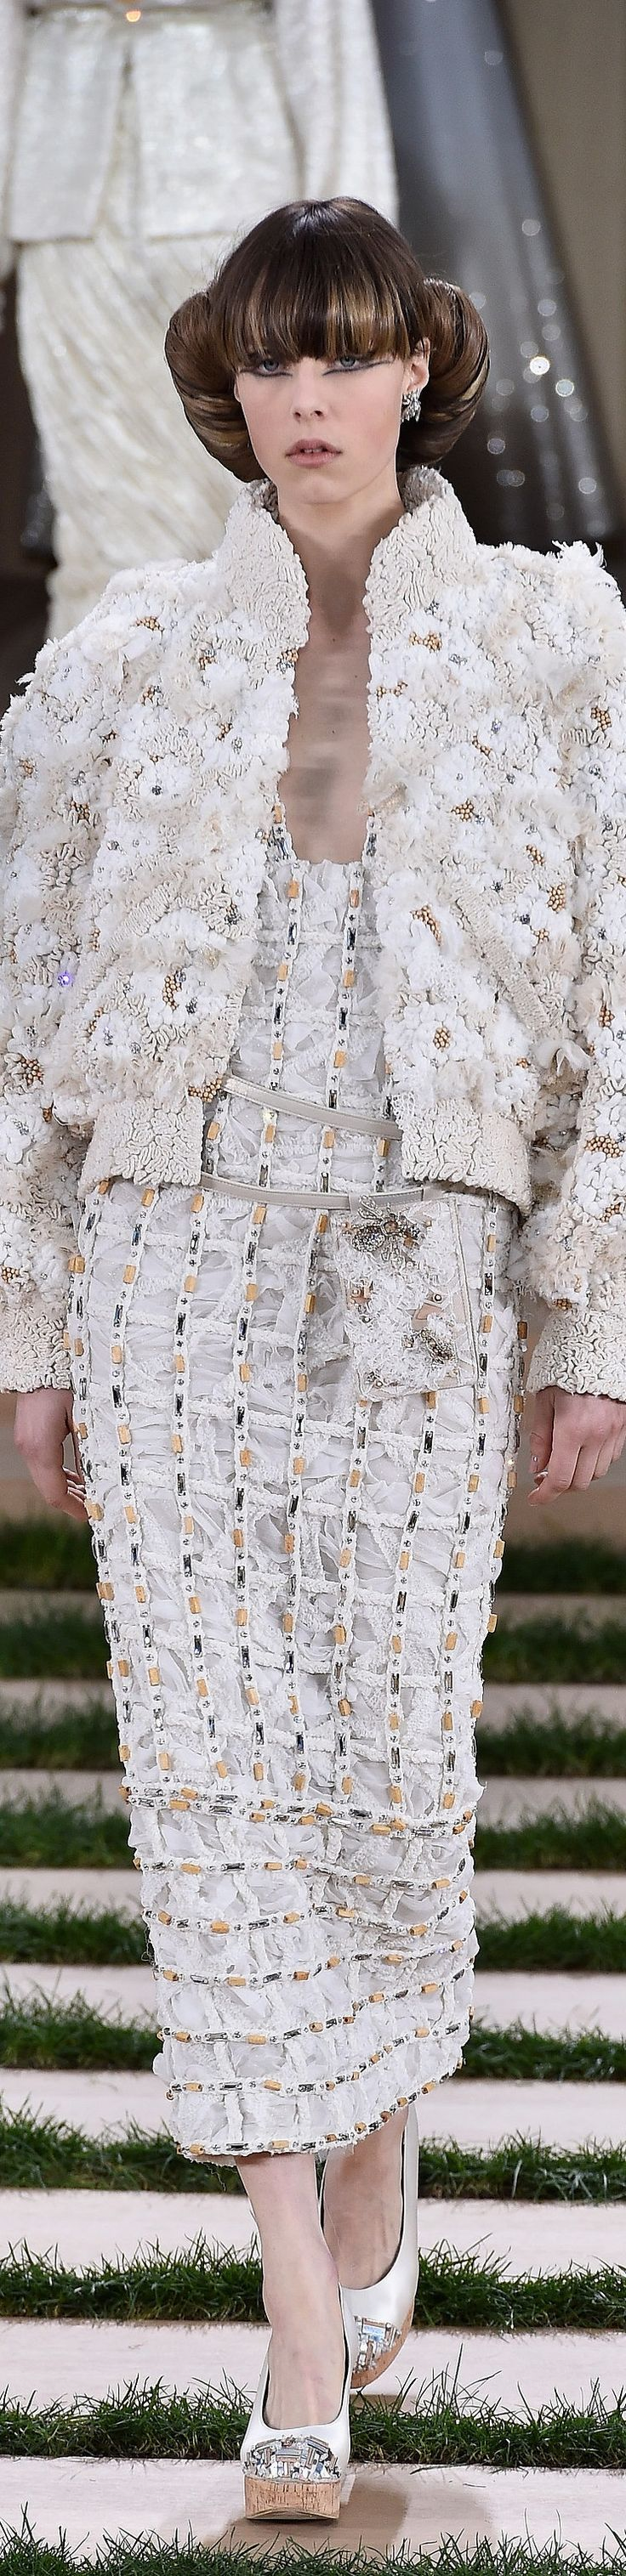 Chanel Couture Spring 2016                                                                                                                                                                                 More